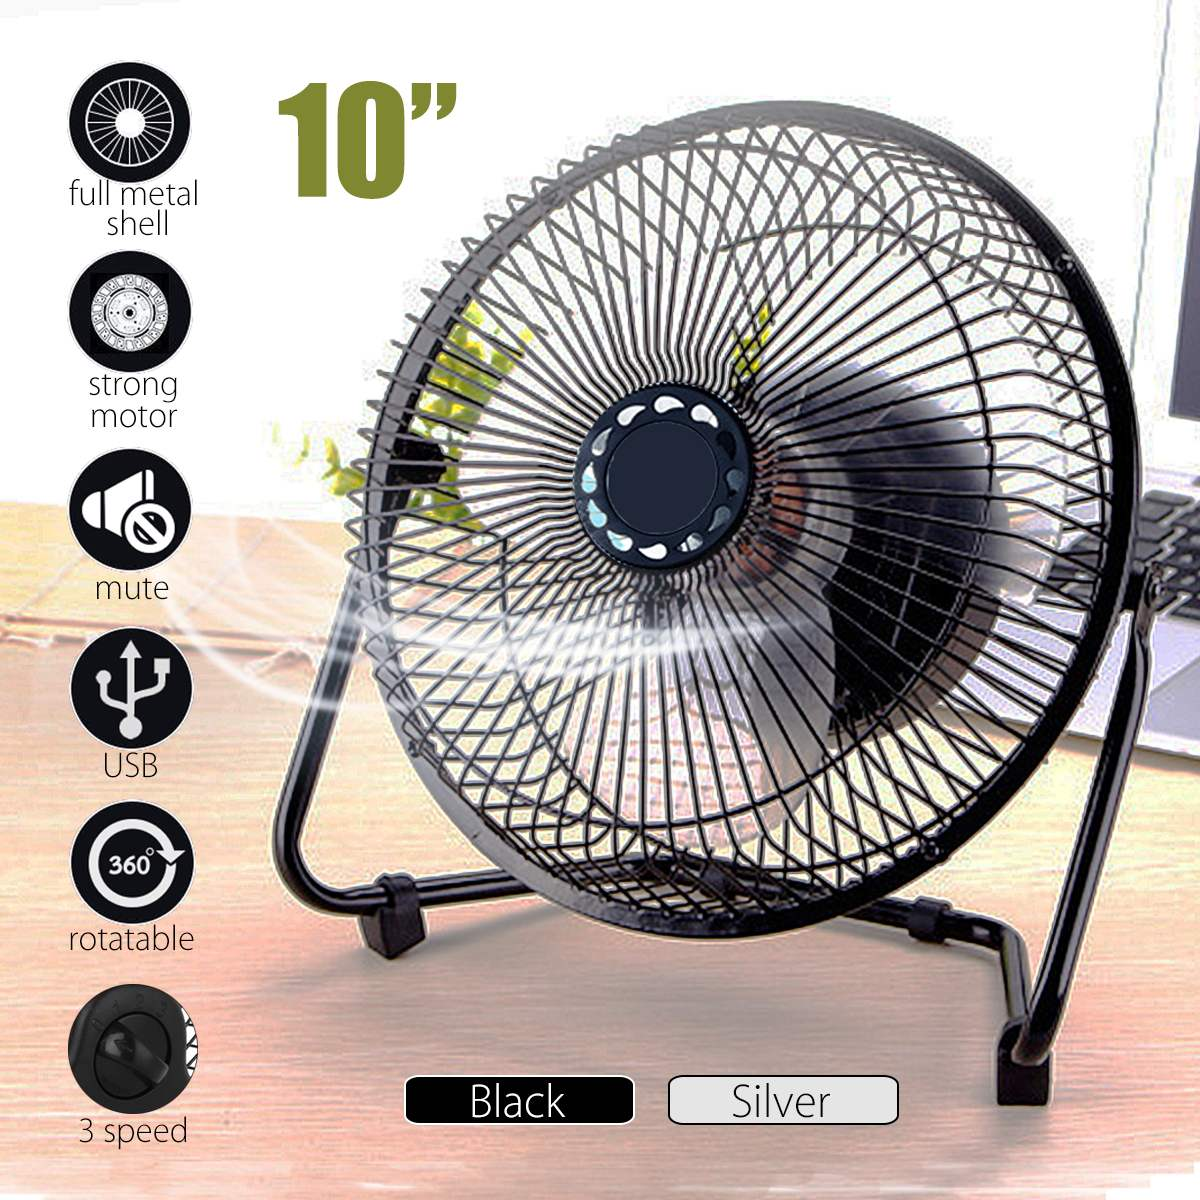 10inch Metal Electric 360Degree Rotatable USB Fan Cooler Rechargeable Battery Desk Table For PC Computer Laptop Chormebook цена